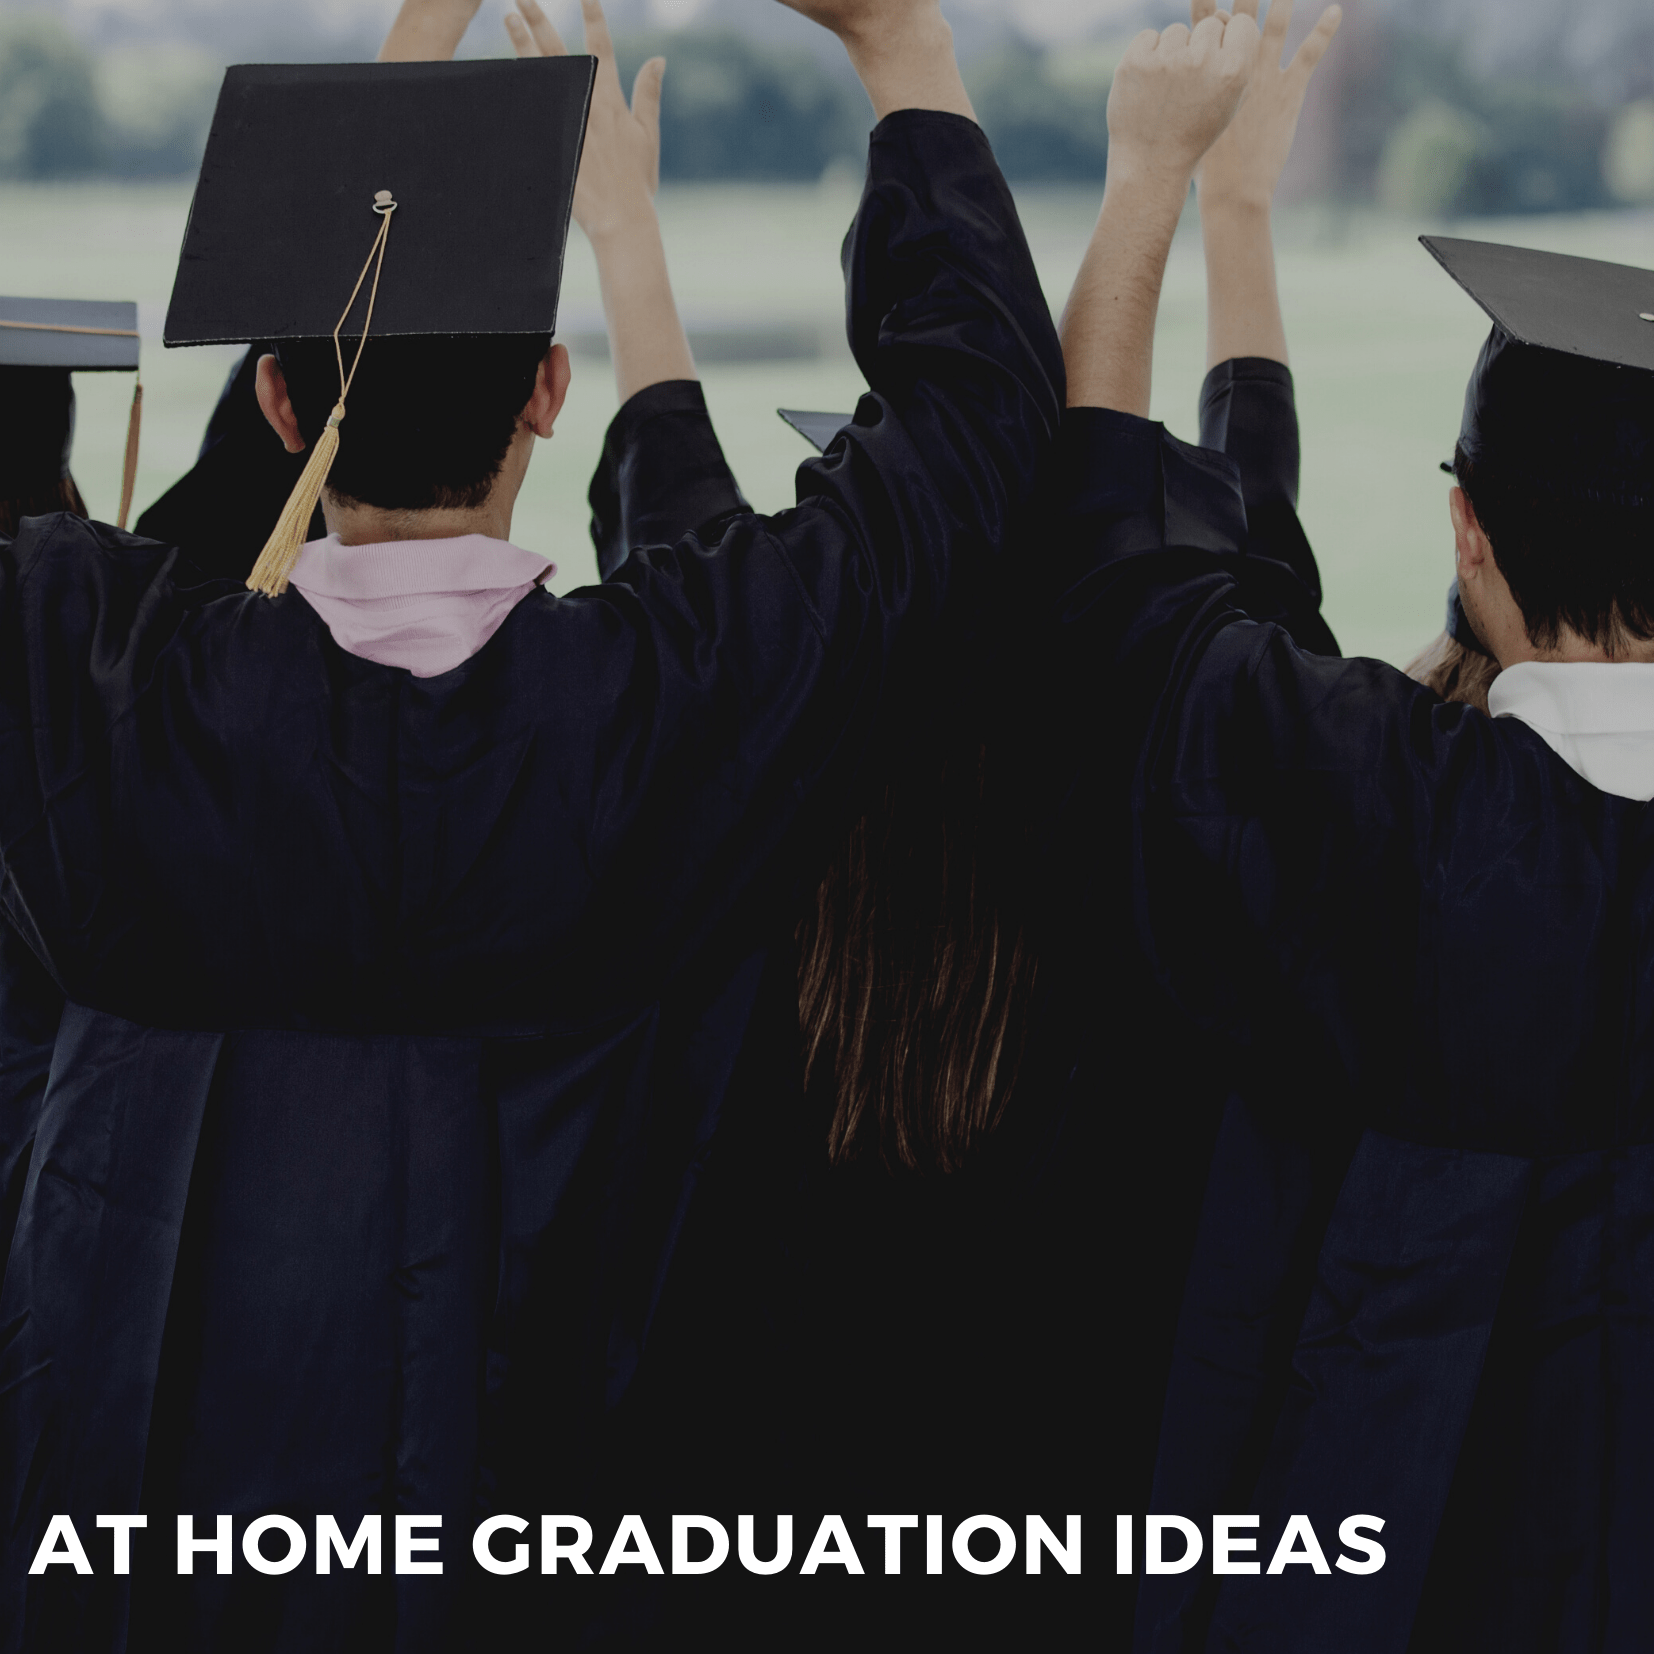 Make your grad feel oh so loved with these fun ways for them to celebrate their graduation at home.